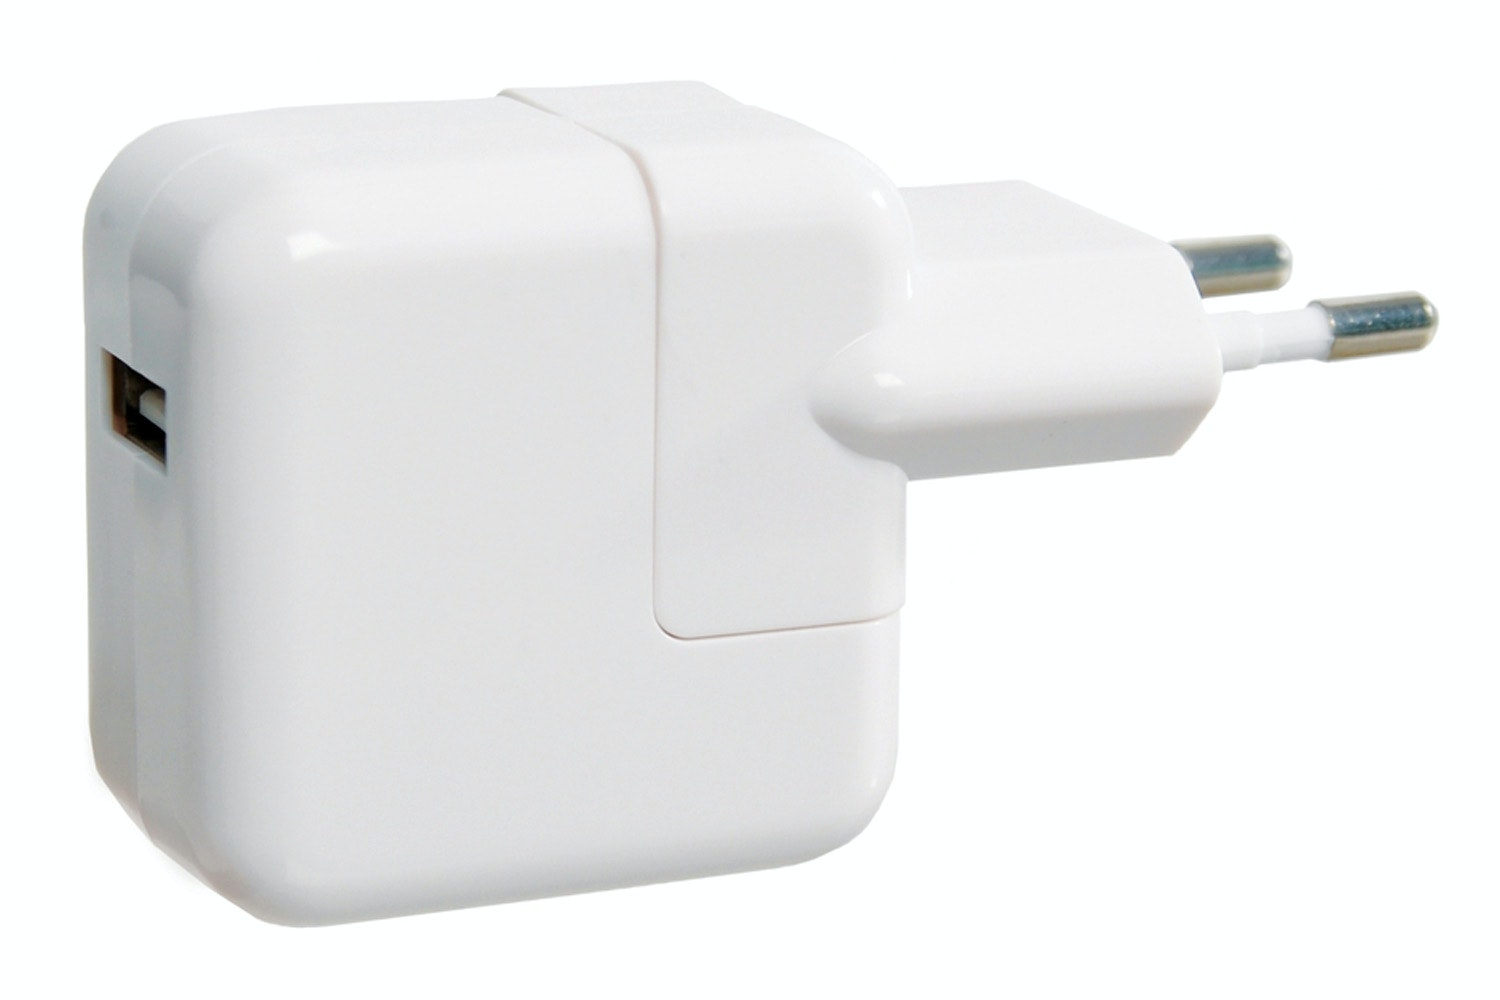 Hahnel USB Mains Adapter | White